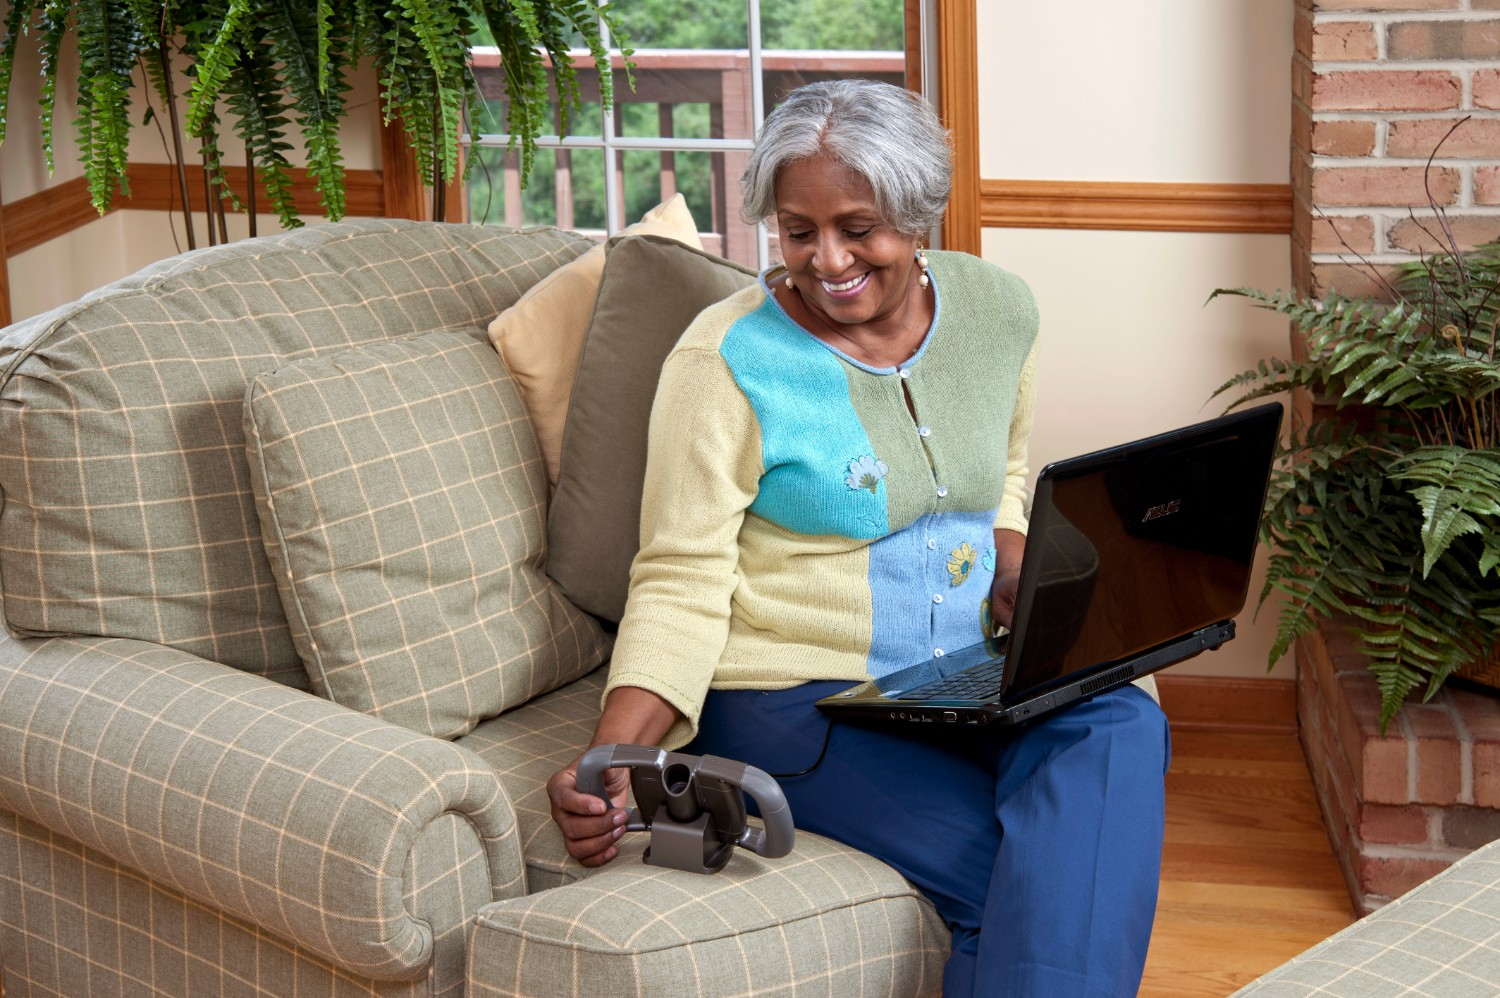 Top 5 CF Patient Benefits for Monitoring Your Lung Functions at Home